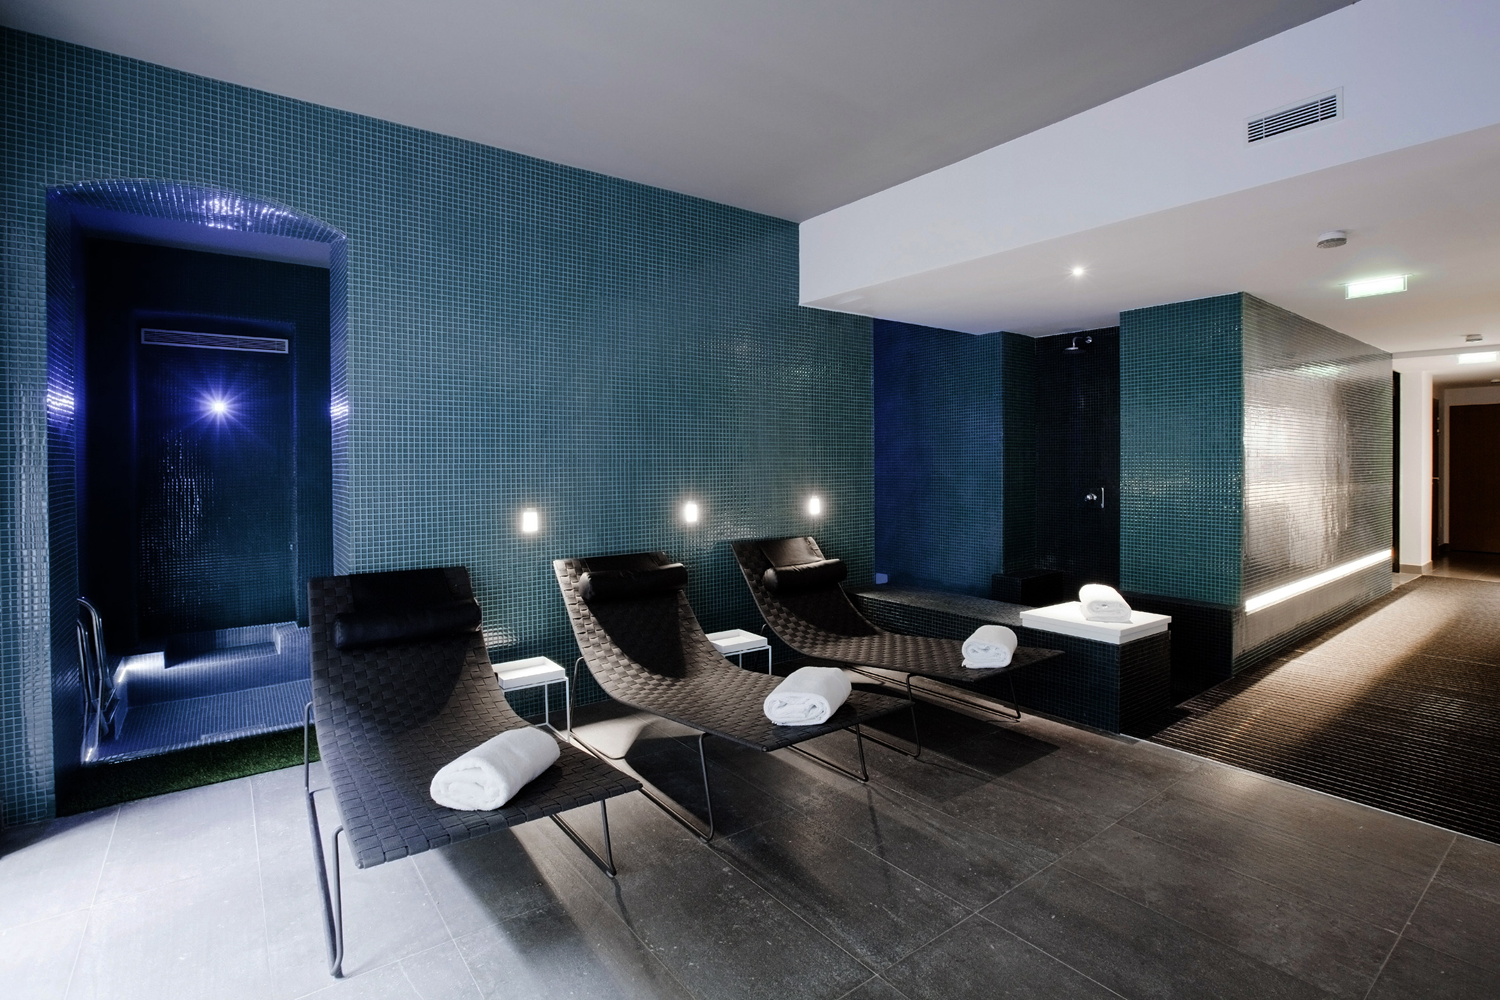 Les 10 plus beaux spas de france architectes paris for Hotel design marseille